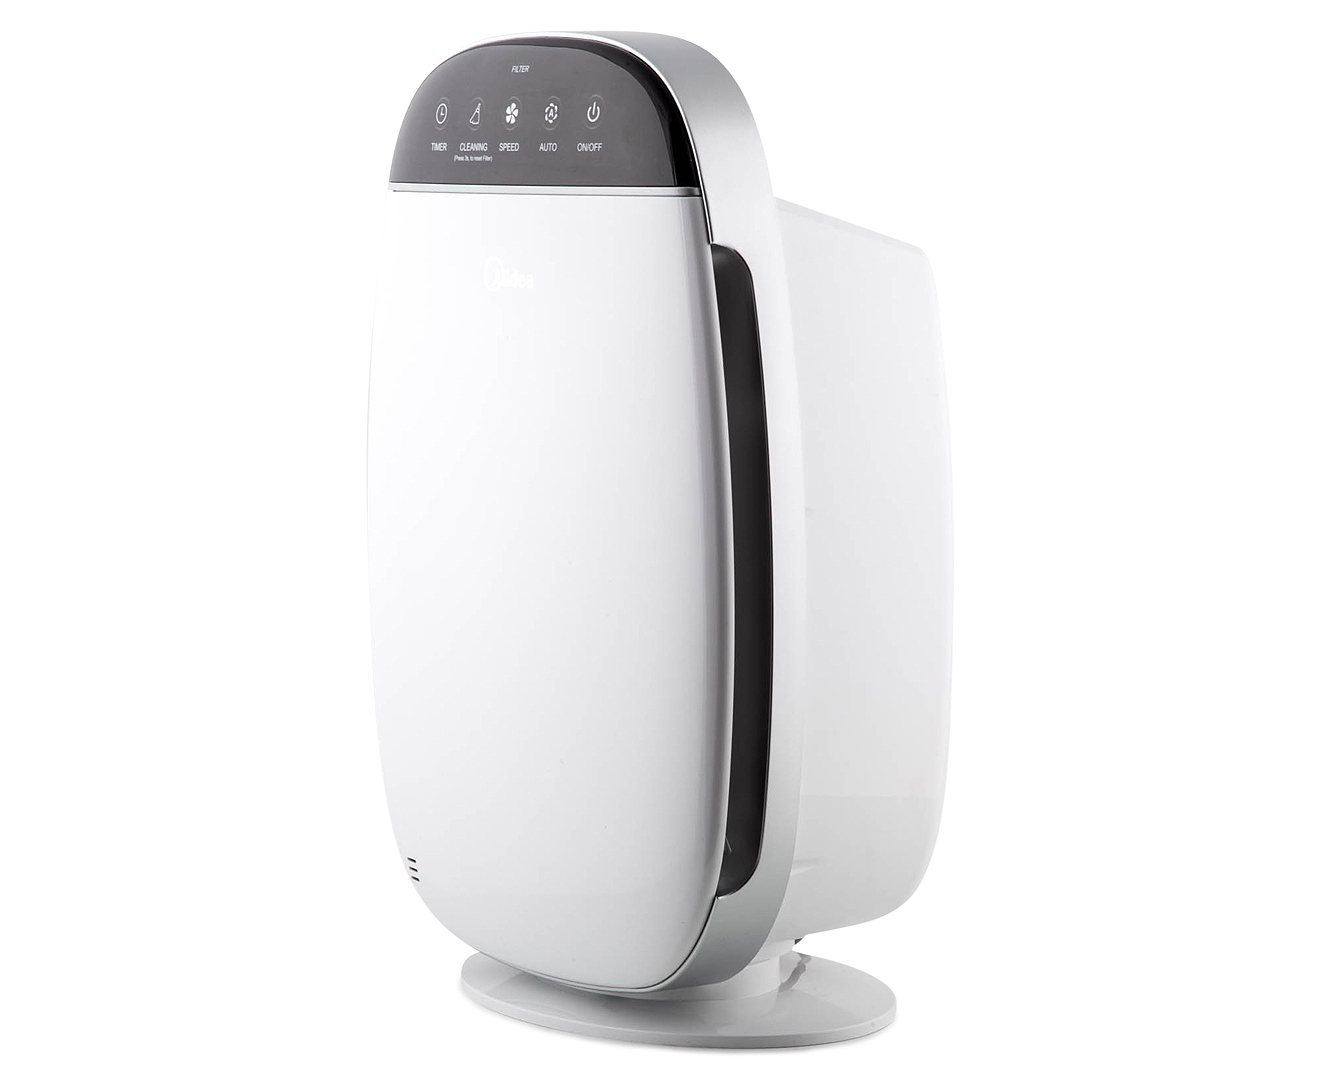 What does an air purifier do? Just as their name suggests; air purifiers purify the air. An air purifier reduces the overall concentration of any airborne contaminants in your home, including dust and dust mite faeces, pollen, mould, pet .